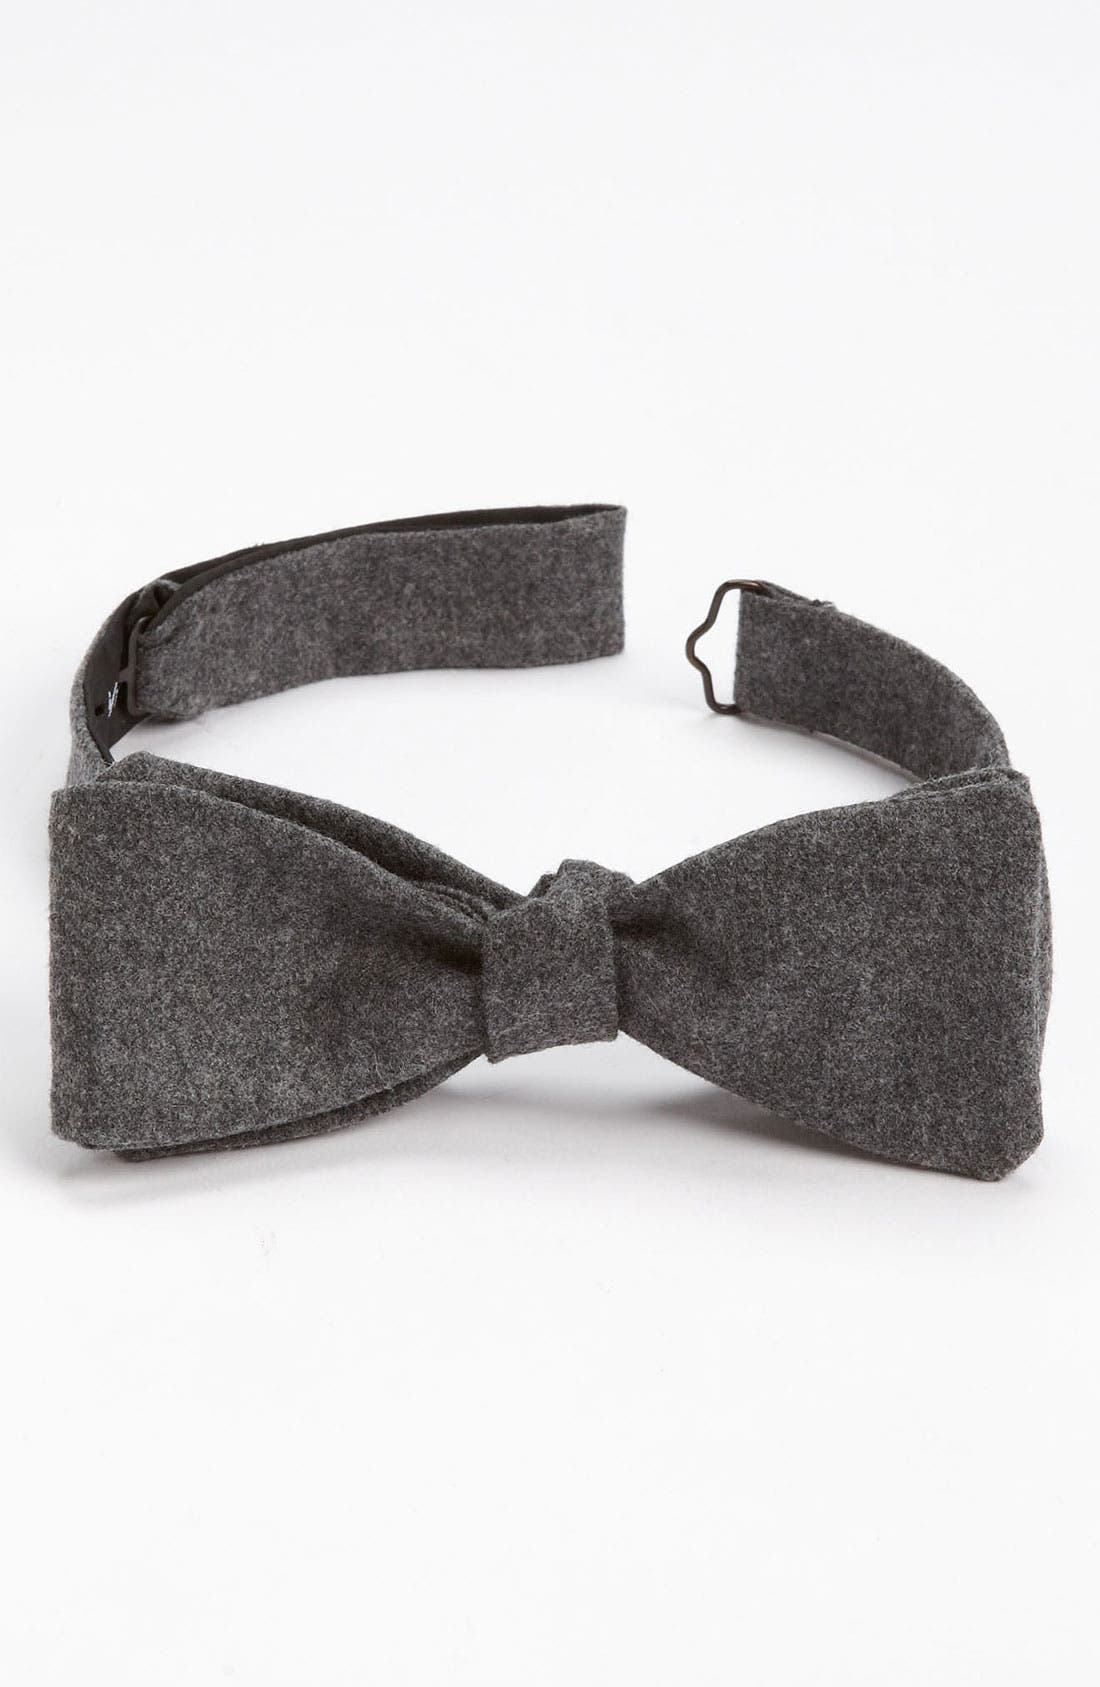 Alternate Image 1 Selected - David Hart Wool Bow Tie (Online Exclusive)